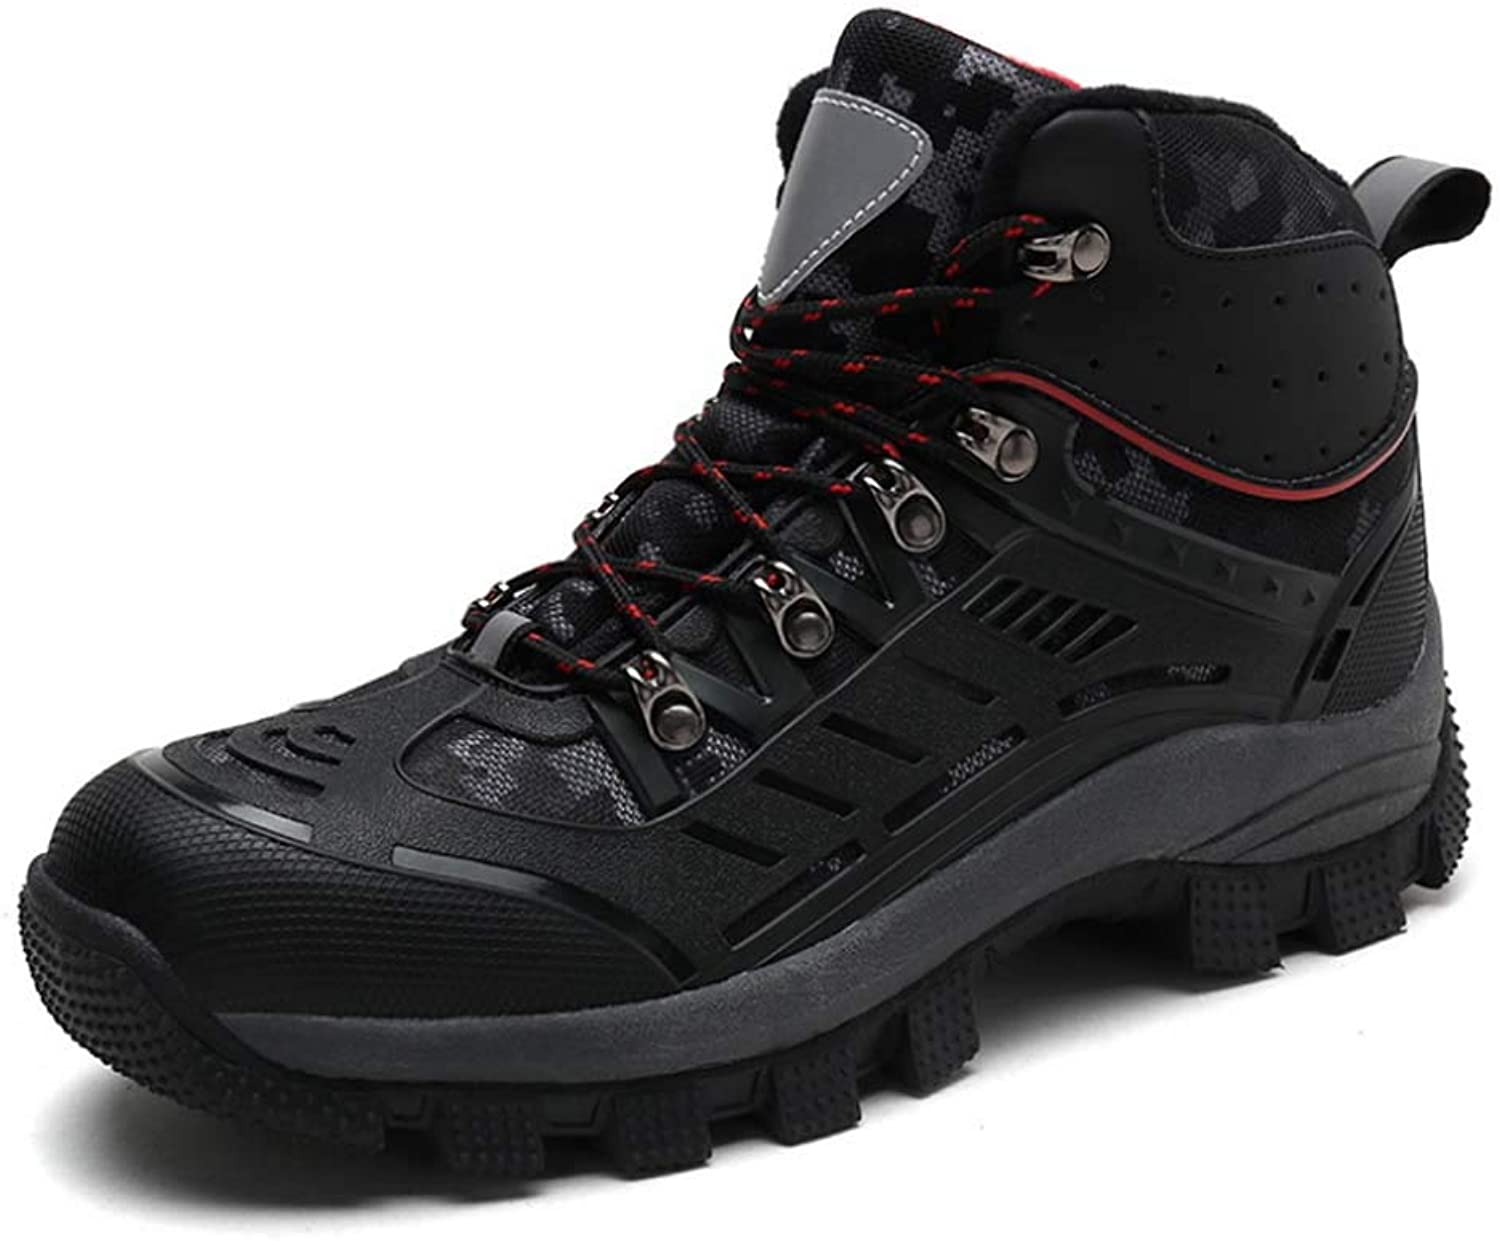 Forest Boots Cut Predection Boots Men Warm Lace-Up Sneakers Waterproof Trekking Walking shoes High Top Casual Leather Winter Walking shoes